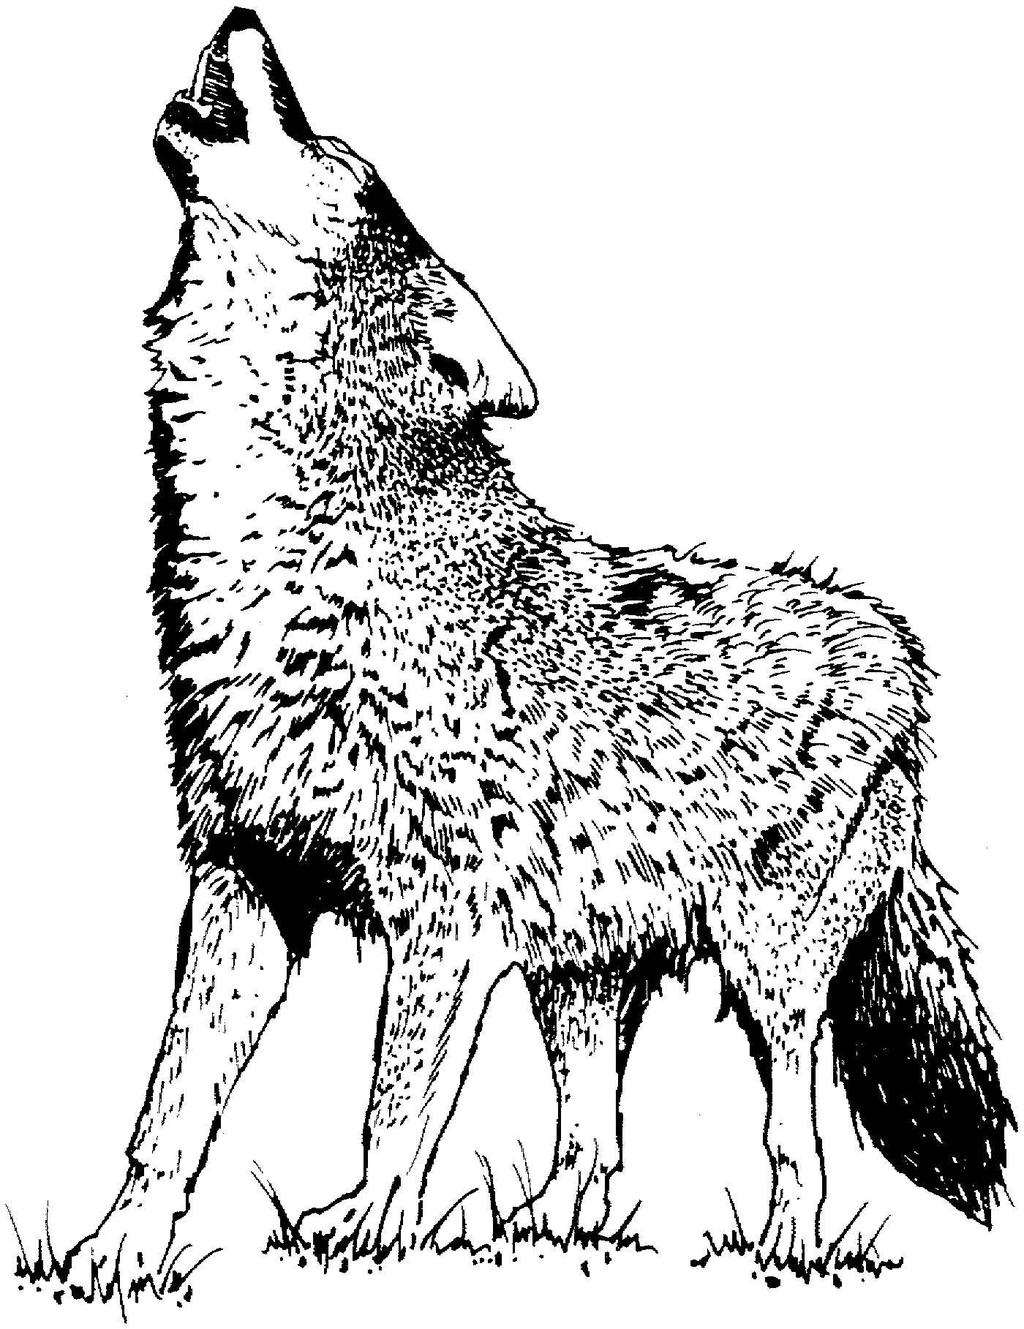 Wolf clipart black and white svg black and white download Wolf Clipart Tigersit Black and White - Clipart1001 - Free Cliparts svg black and white download